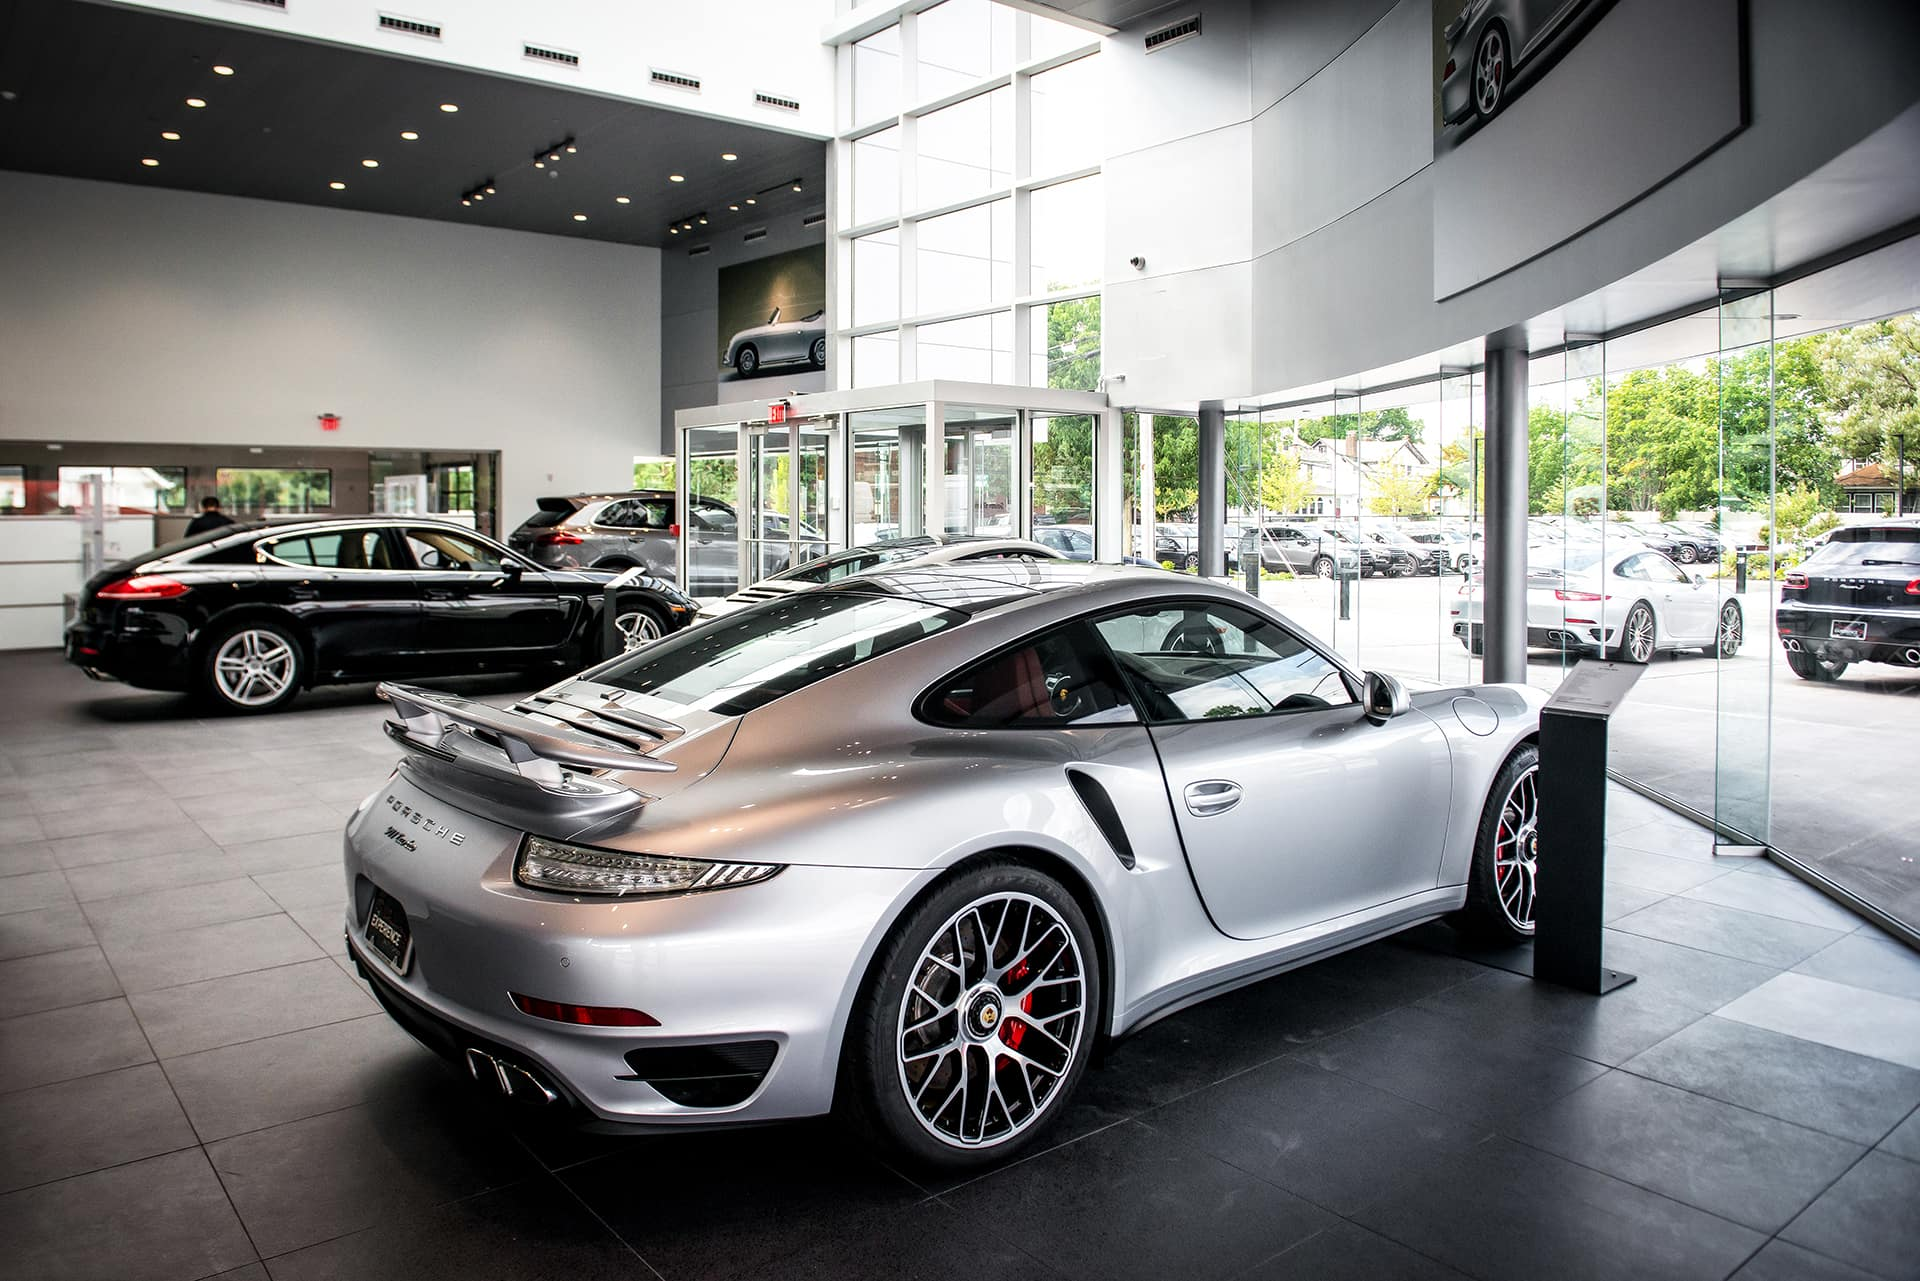 Porsche South Shore is your Porsche Dealer in NY